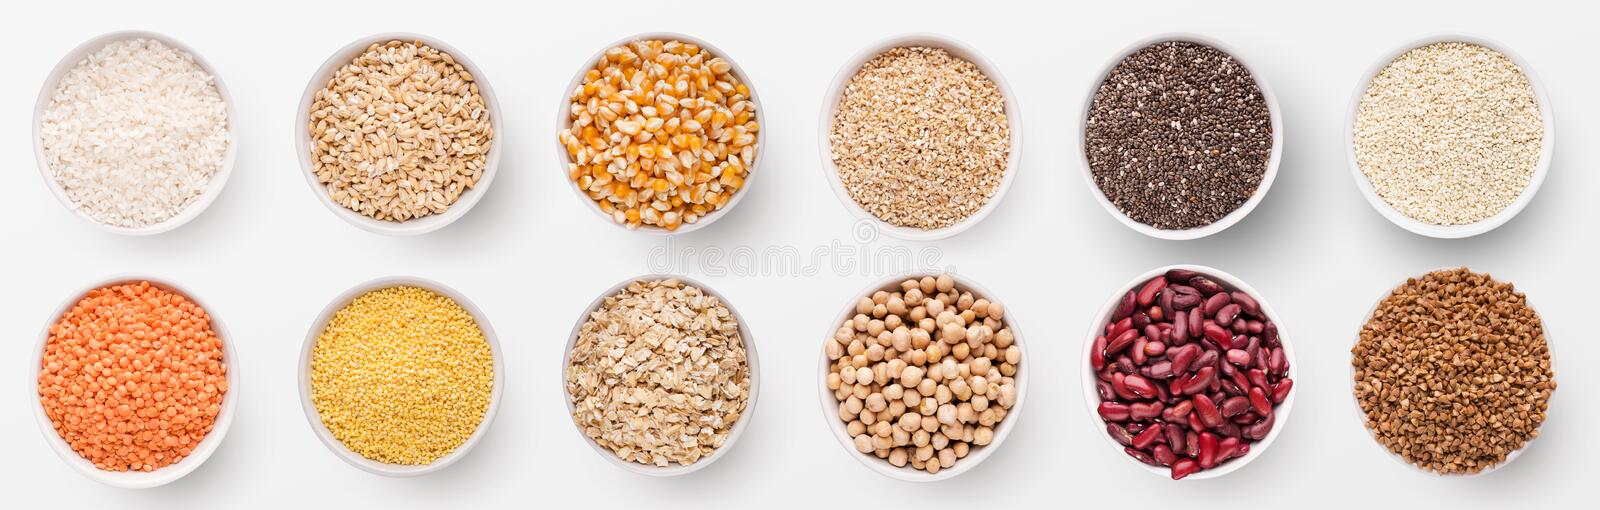 Collection of different grains and beans in bowls stock photography